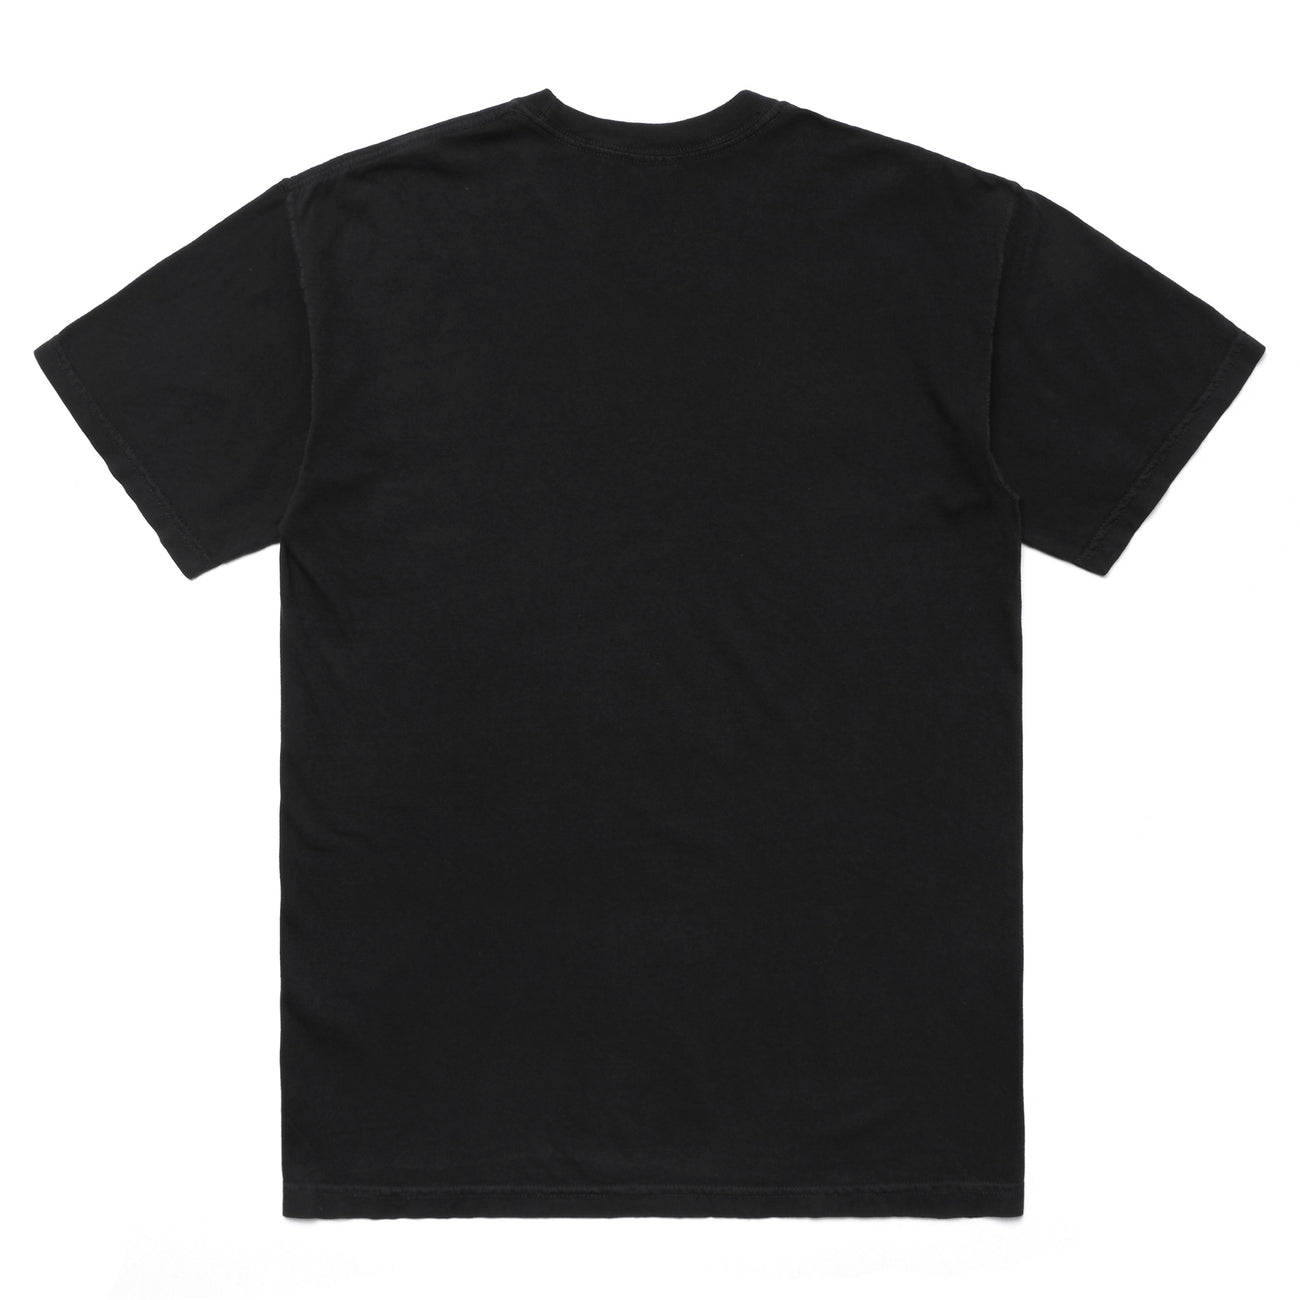 YOUTH TERROR TEE - BLACK